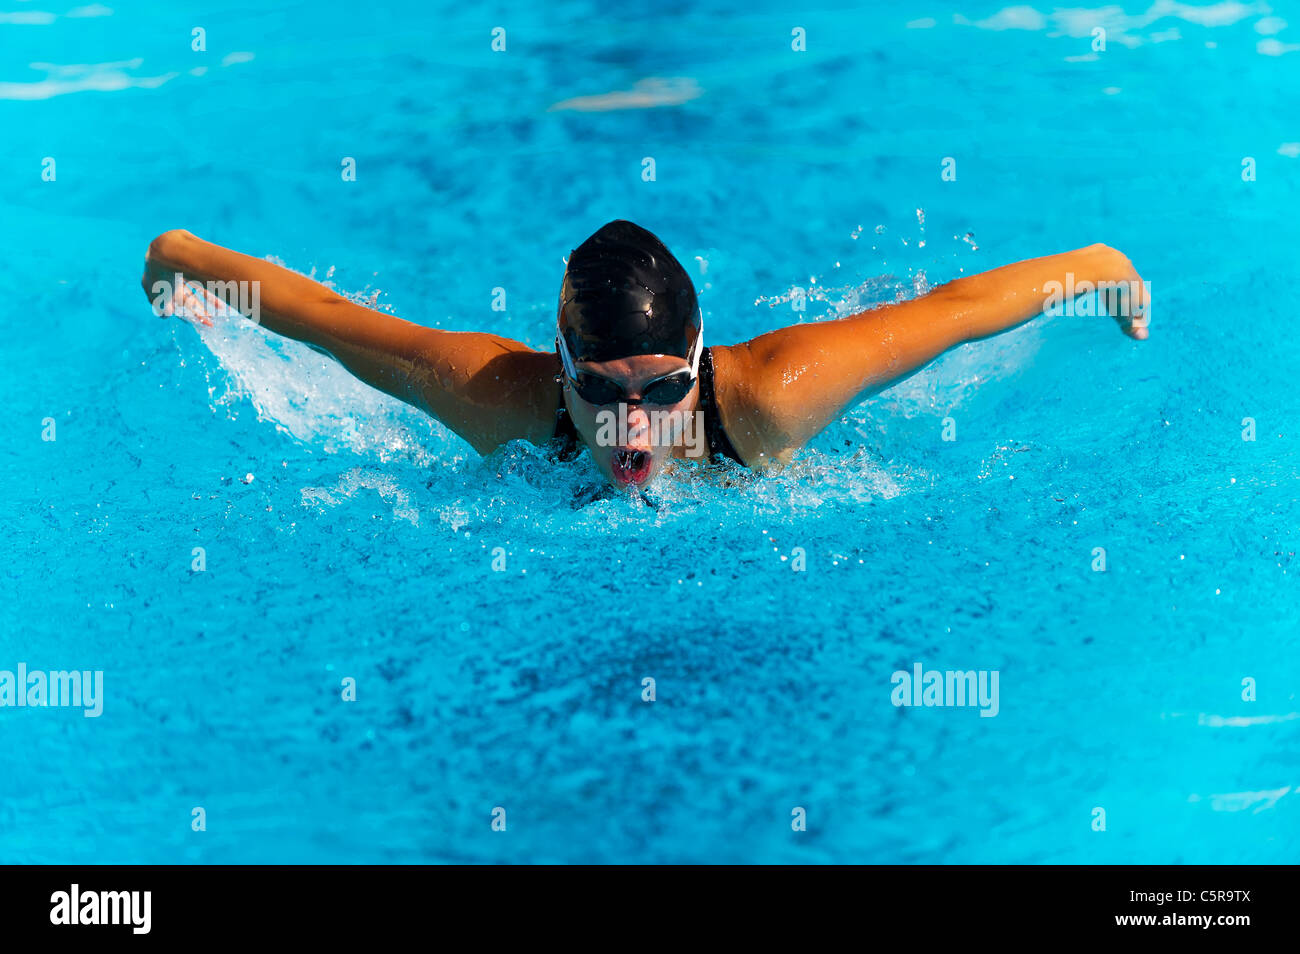 A swimmer doing the Butterfly. - Stock Image